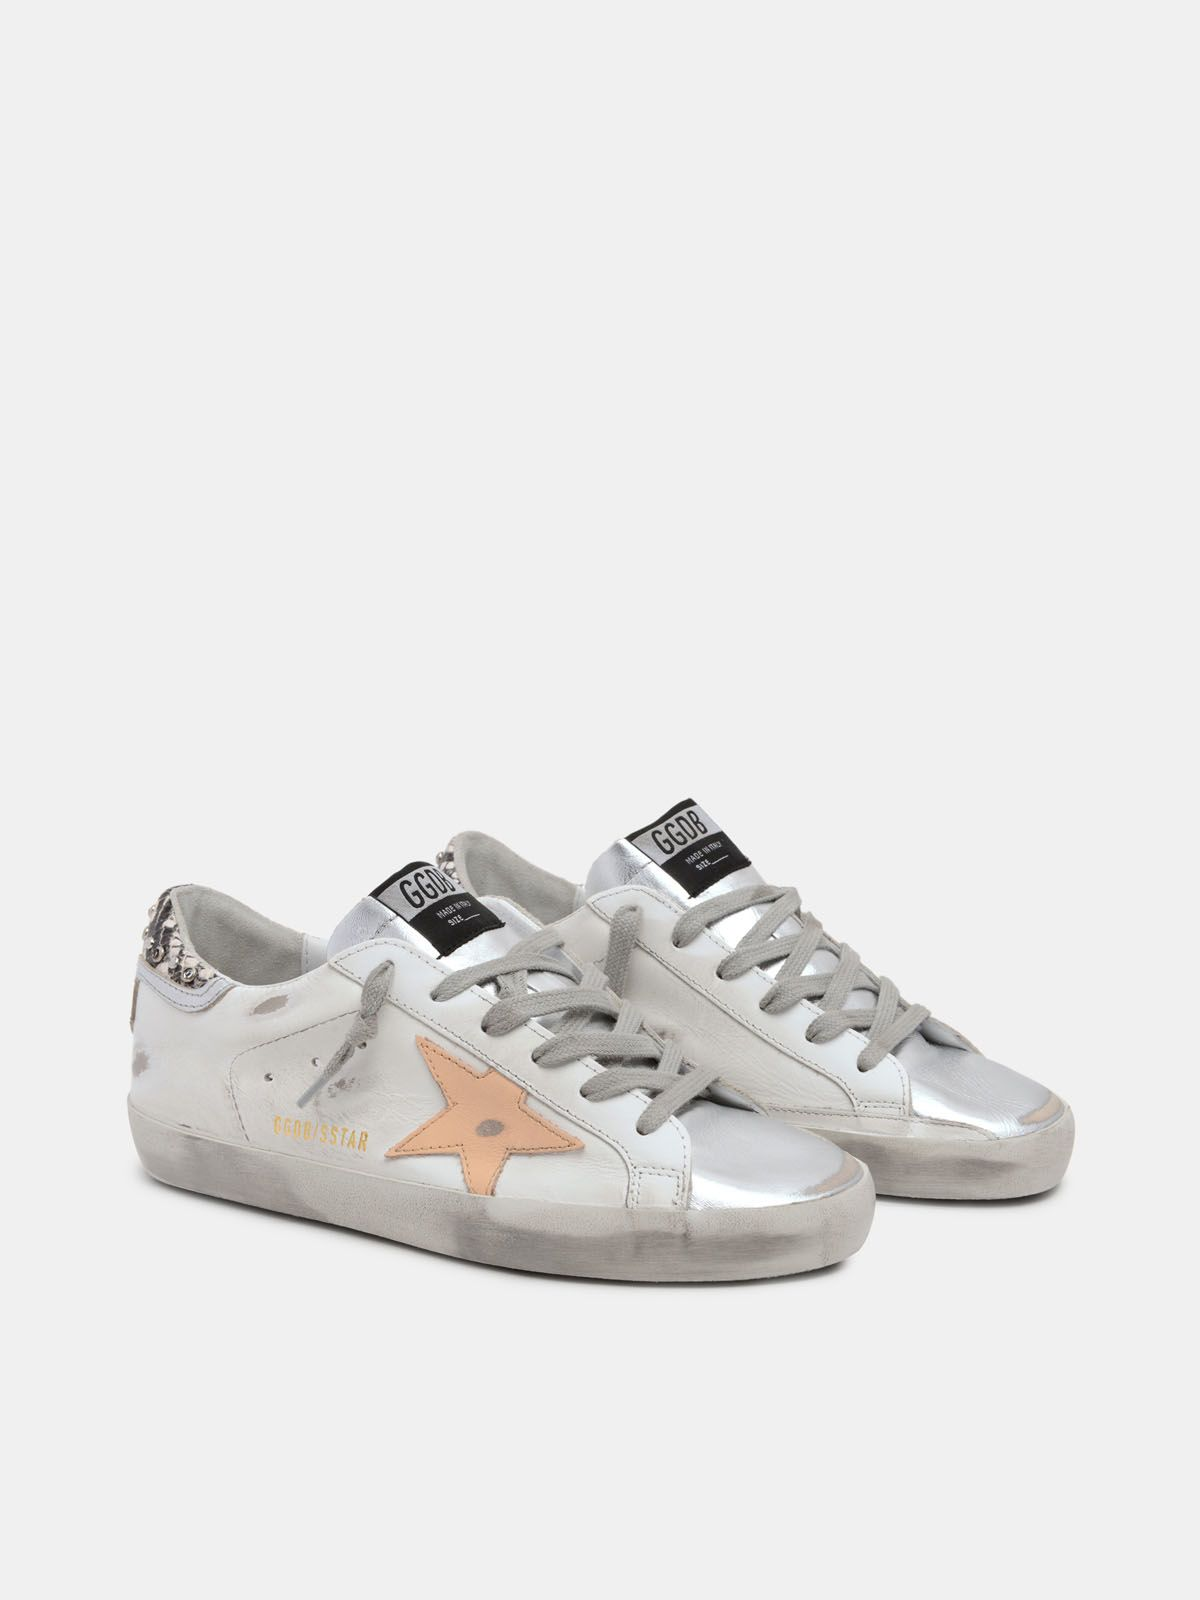 Golden Goose - White Super-Star sneakers with python-print and rhinestone heel tab in